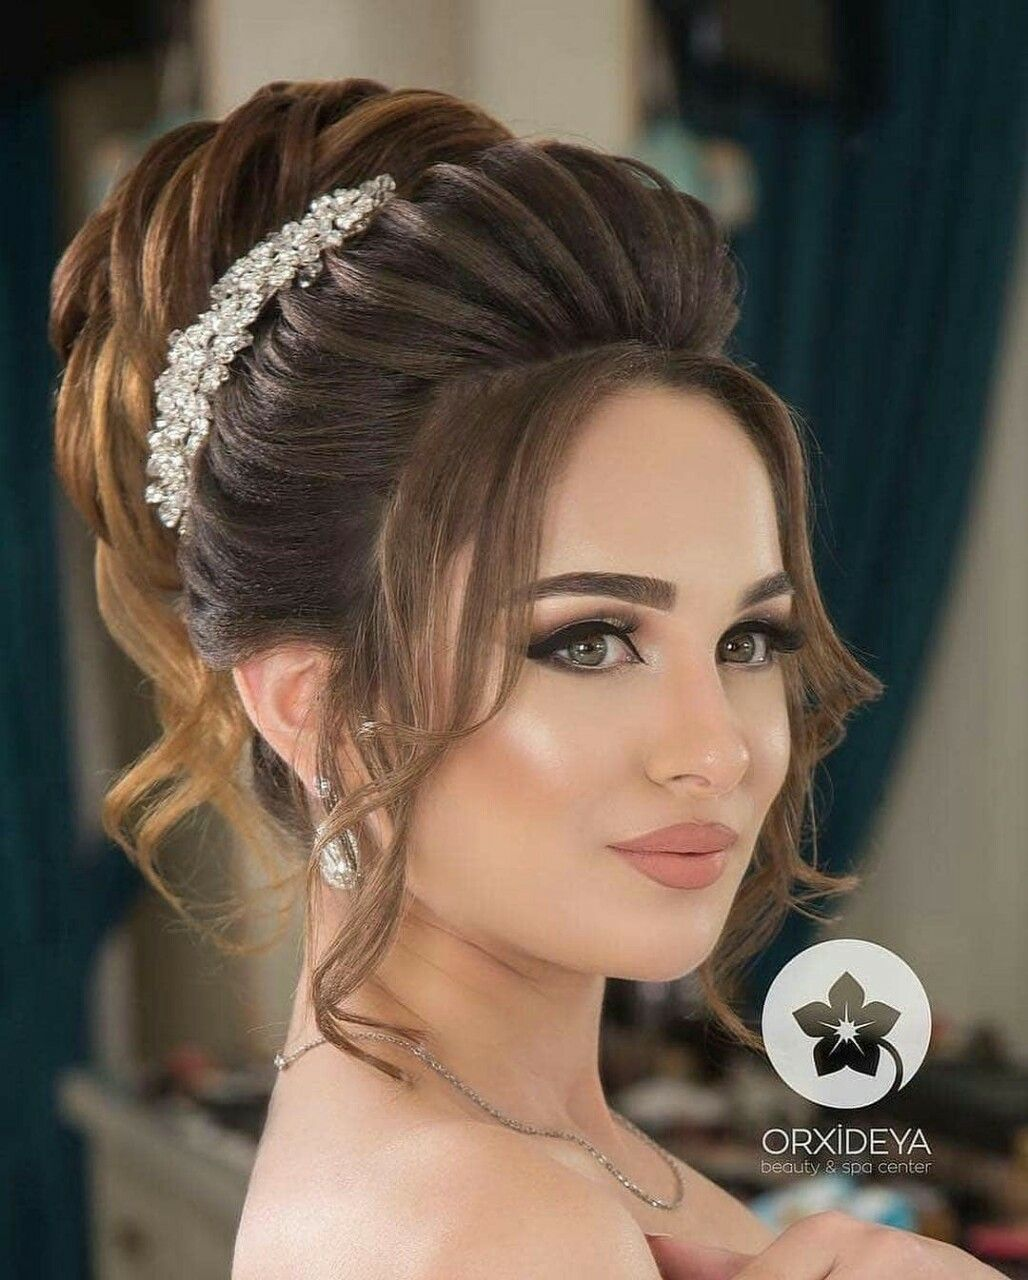 Follow Me Alizeh Khan Jannat29 For More Like This Womens Hairstyles Wedding Hairstyles Portrait Photography Women